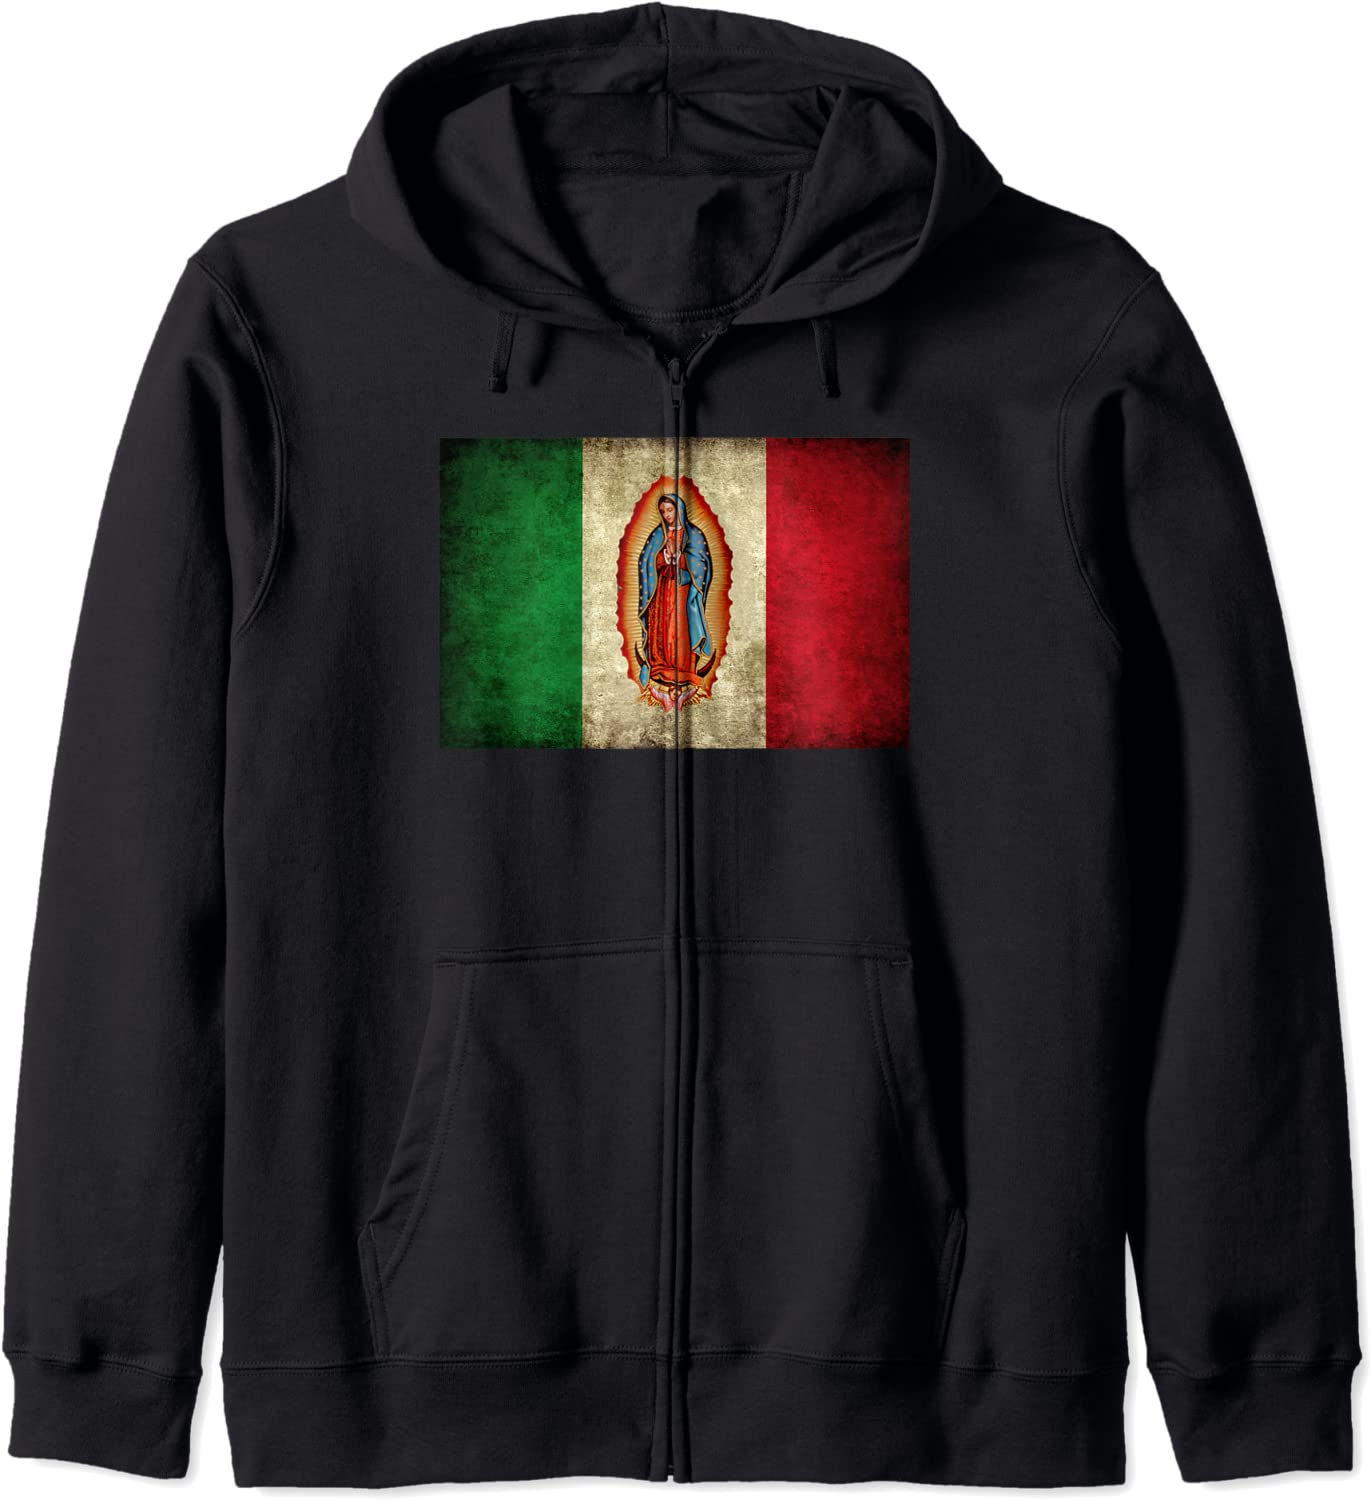 Milwaukee Mall Our Nashville-Davidson Mall Lady Virgen De Guadalupe Zip Flag Hoodie Mexican